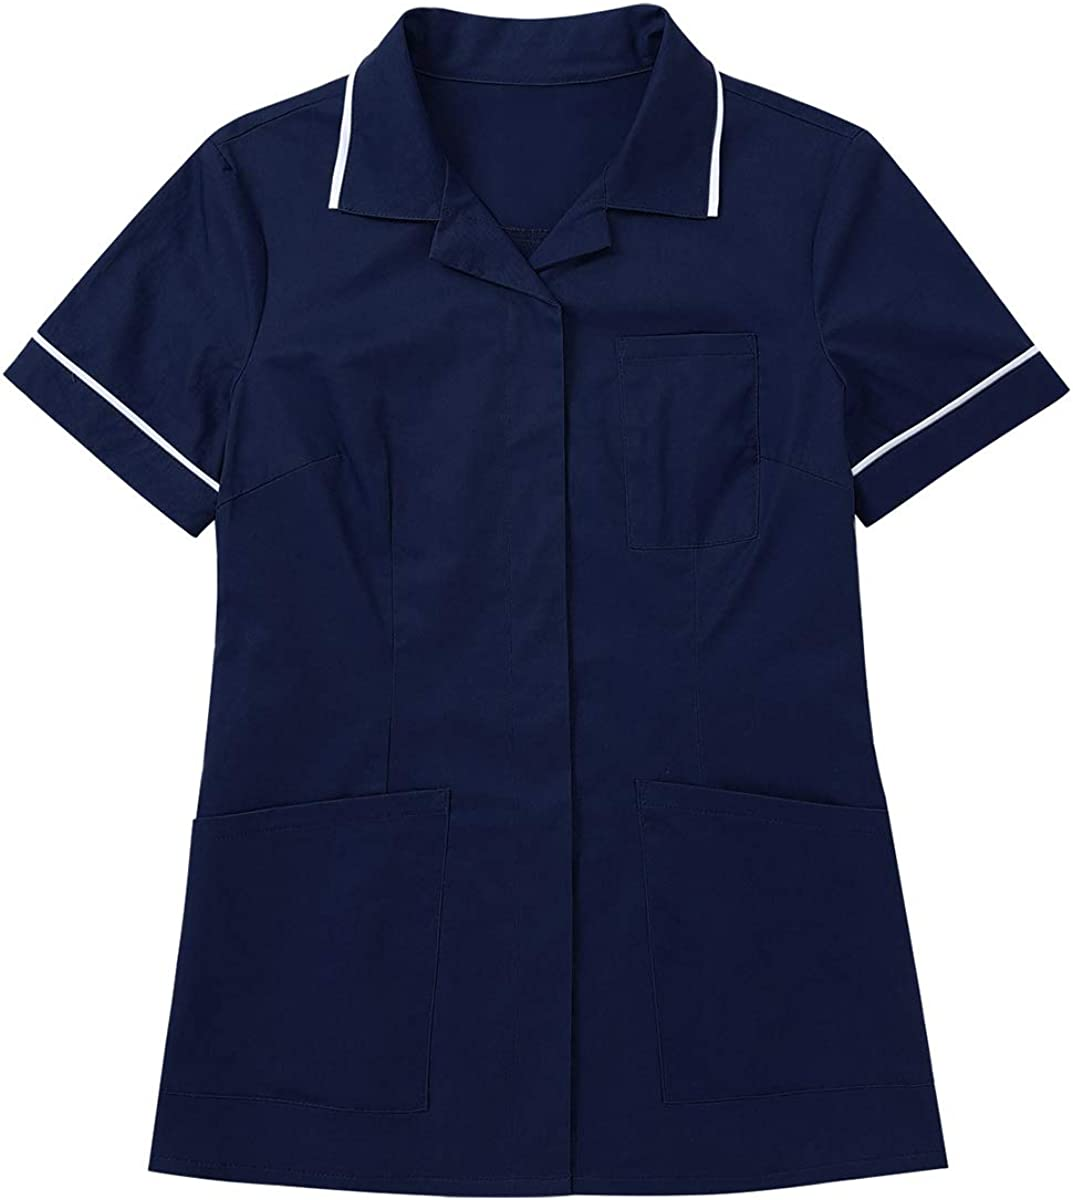 Freebily Damen Uniformen Schlupfkasack Oberteil Tunika Kurzarm Button-down Top Medizinische Berufsbekleidung Pflege Arbeitskleidung OP-Kleidung Marineblau